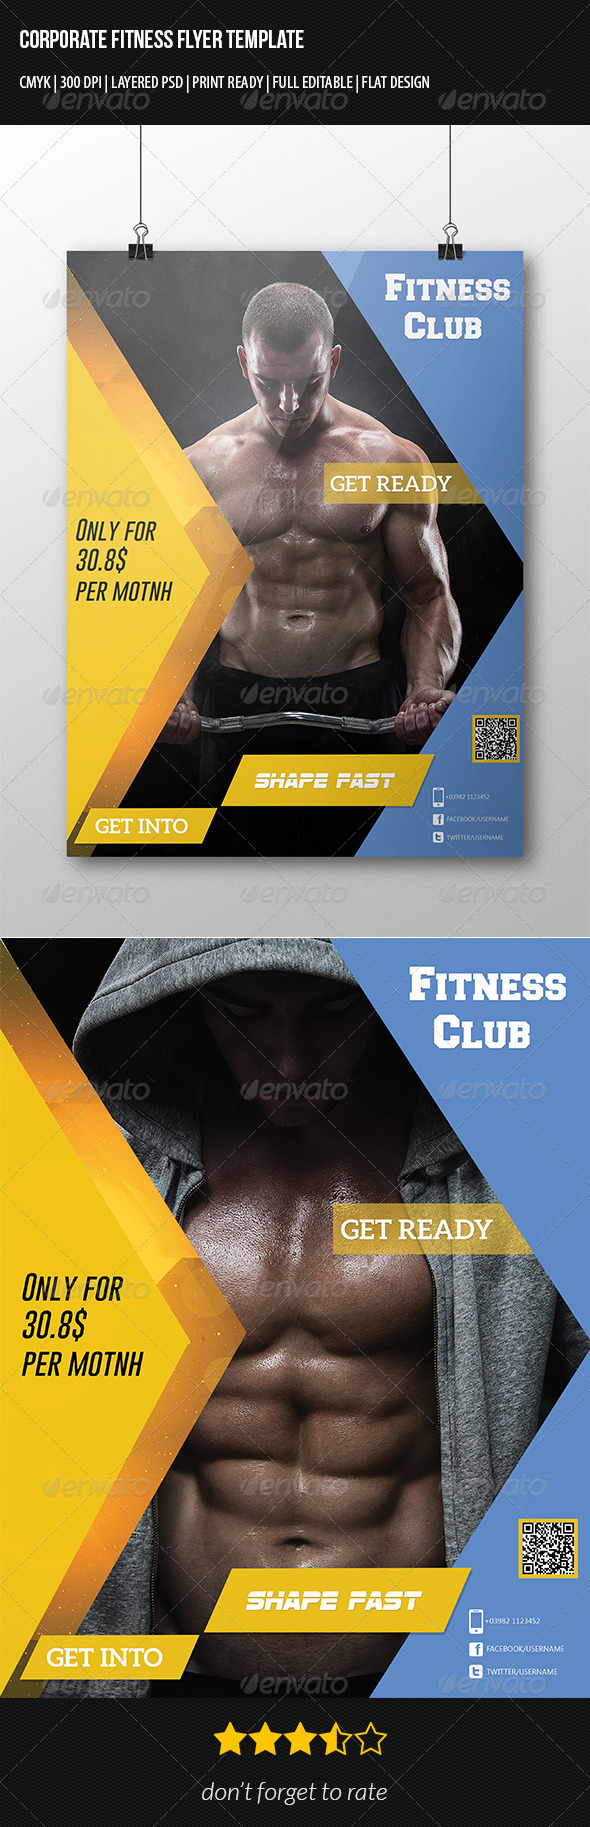 Corporate Fitness Flyer Template - Corporate Flyers